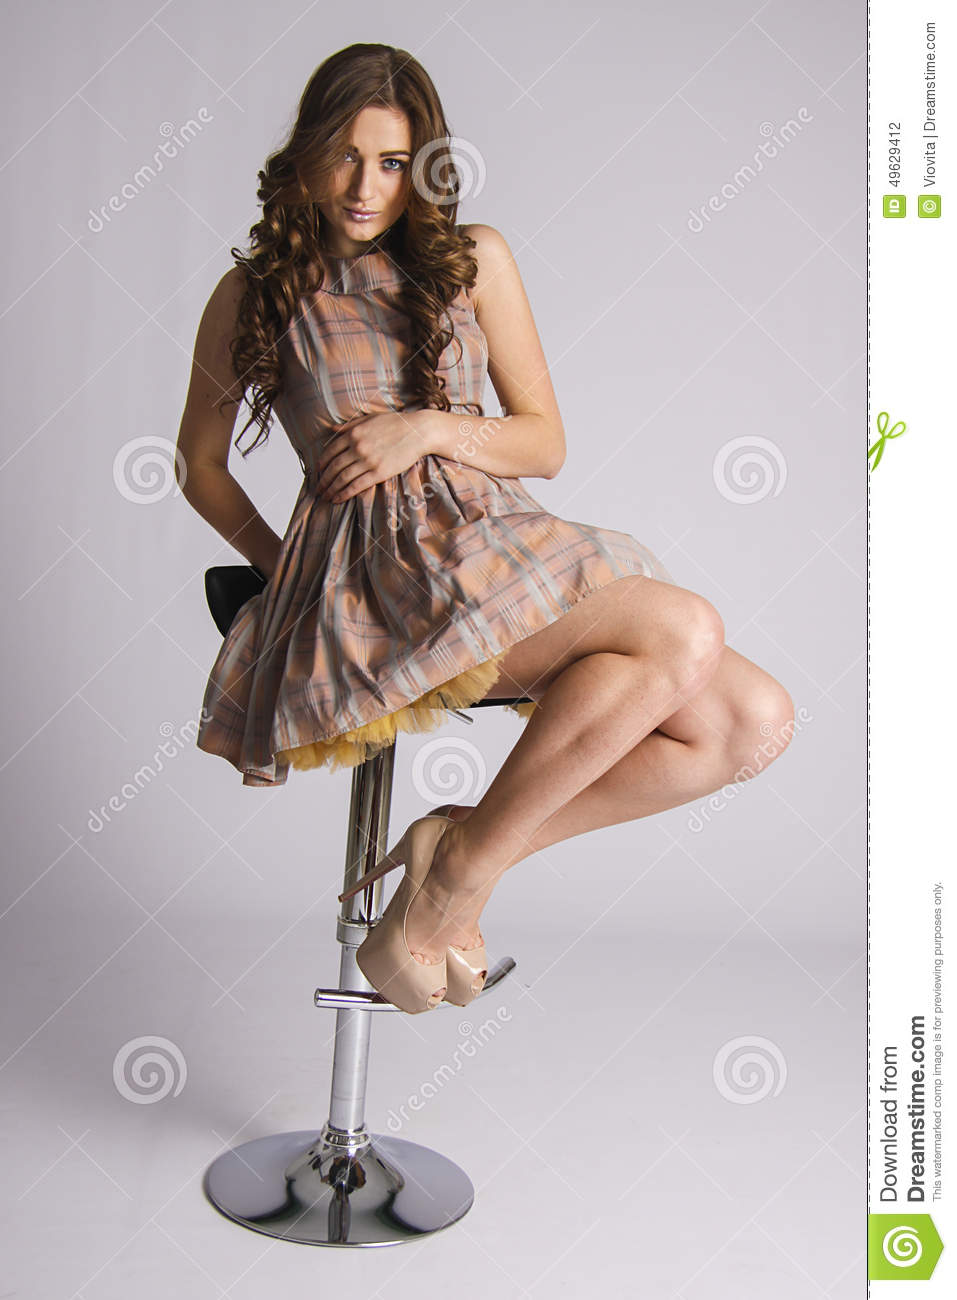 Sexy Glamour Woman Sitting On A Bar Chair Stock Photo